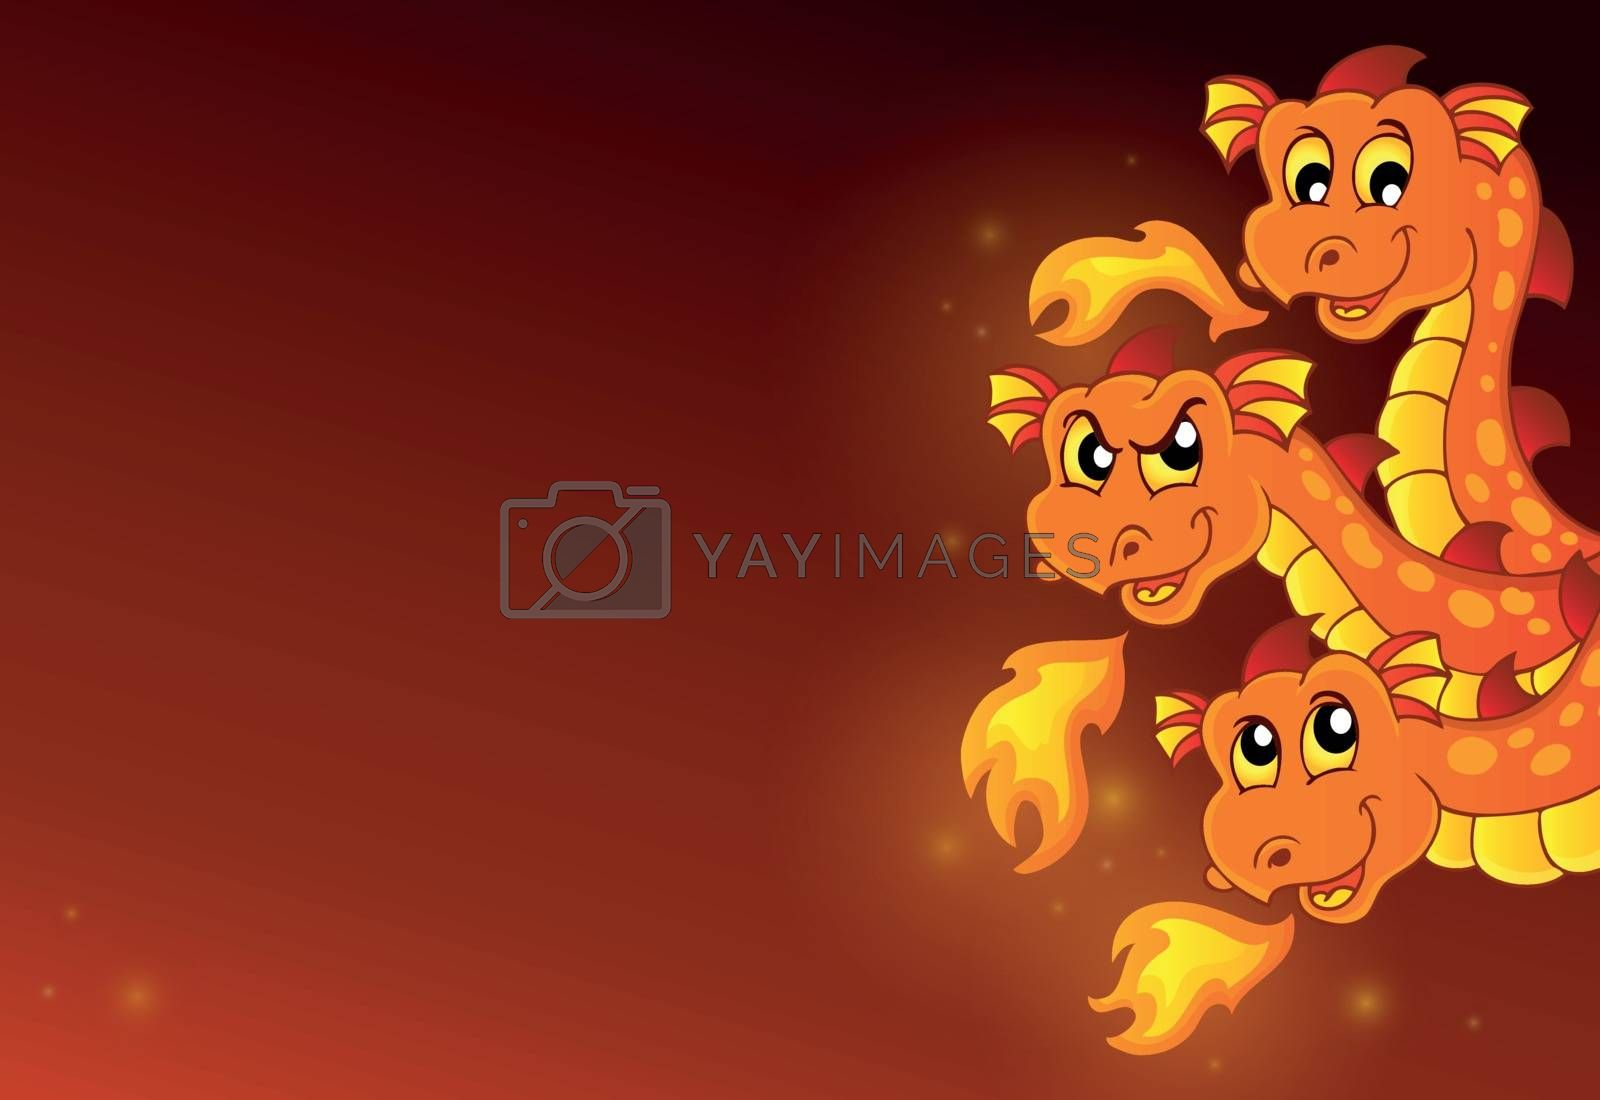 Lurking dragon heads composition 1 - eps10 vector illustration.